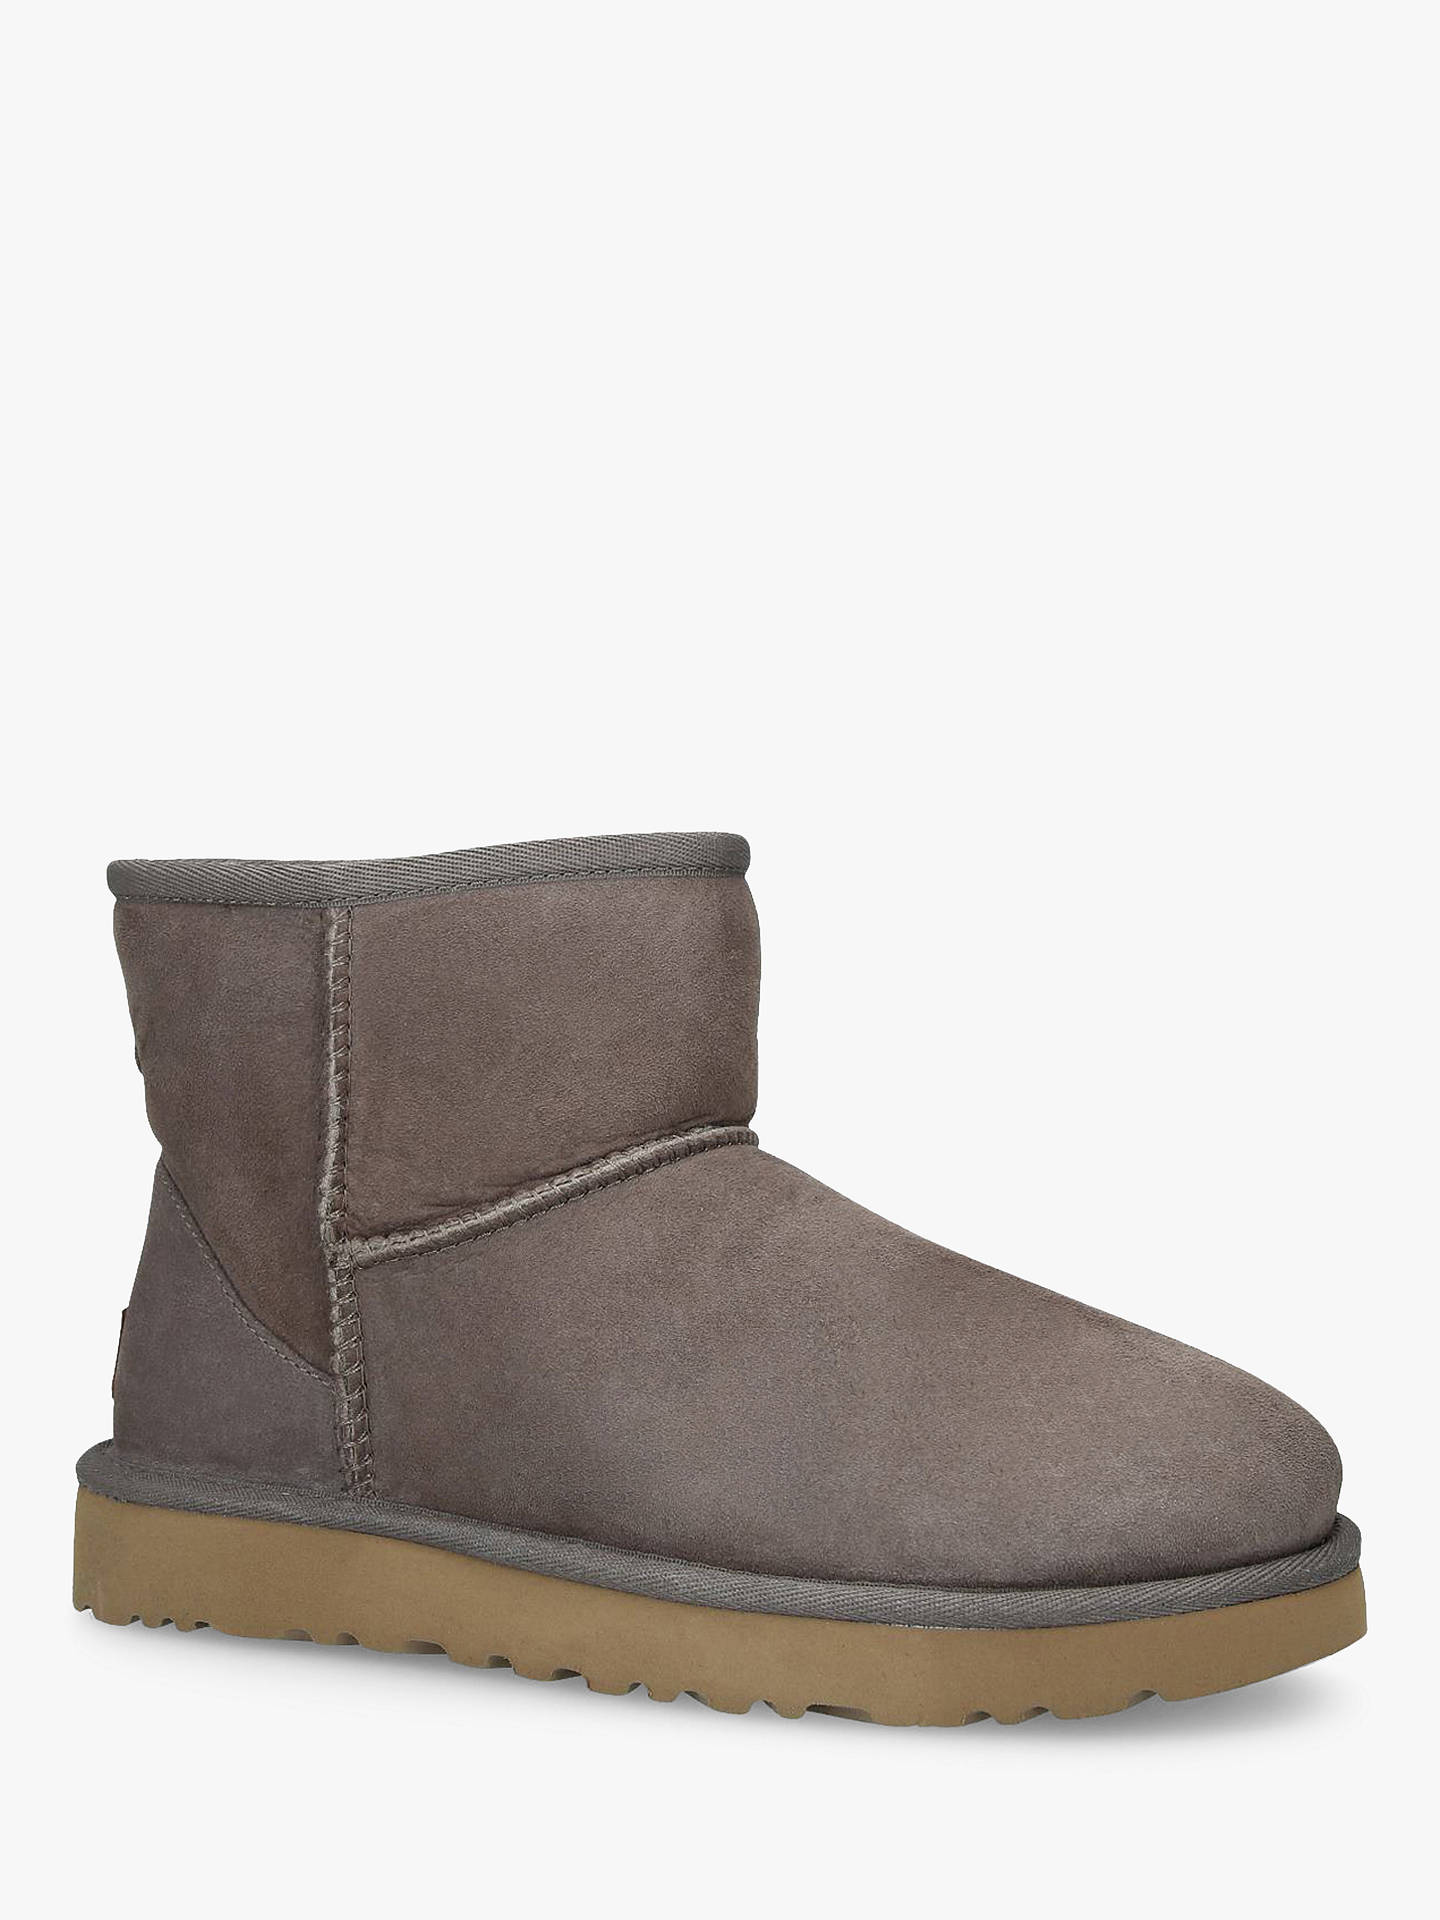 bc50c71d64e UGG Classic II Mini Sheepskin Ankle Boots, Natural Taupe